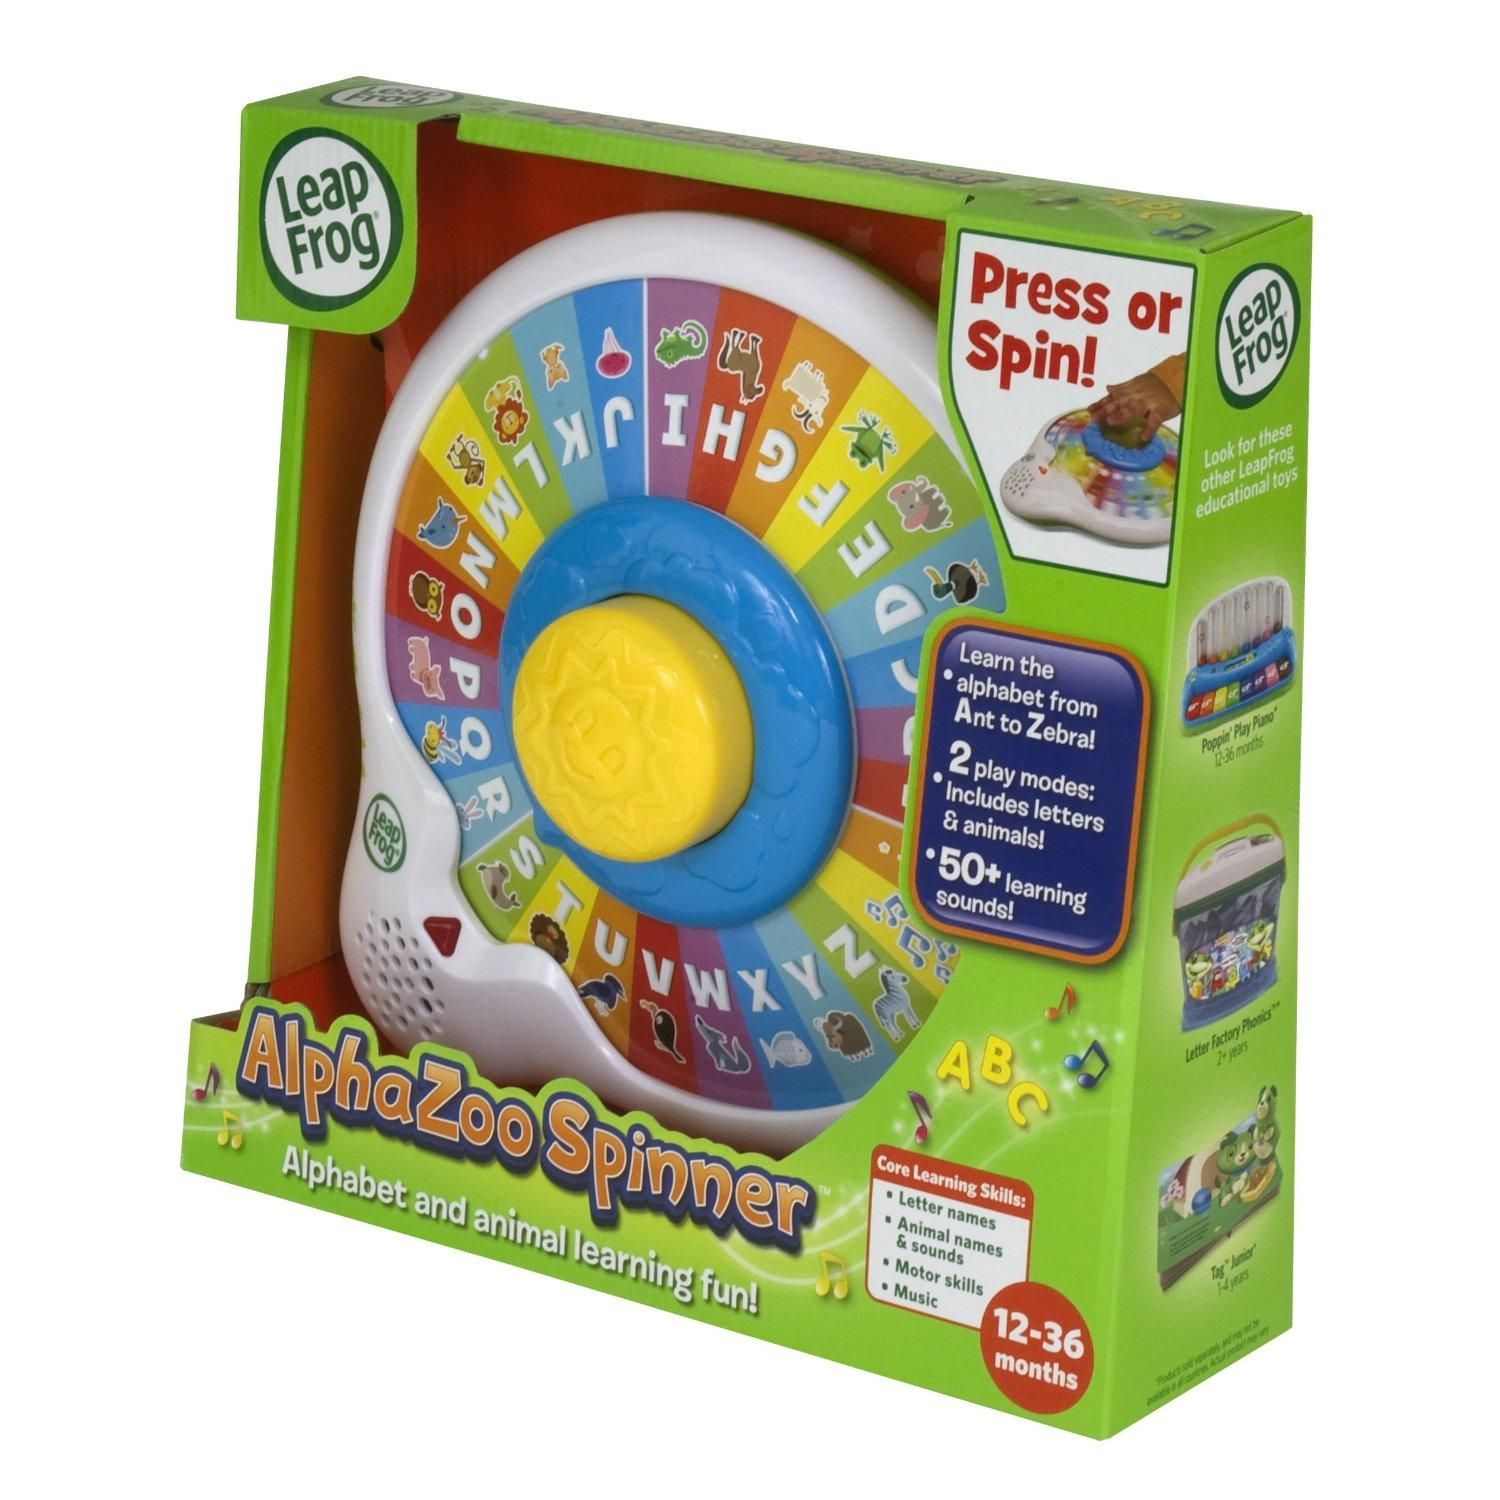 Leapfrog Abc Spinamals Leap Frog Toys Educational Toys For Kids